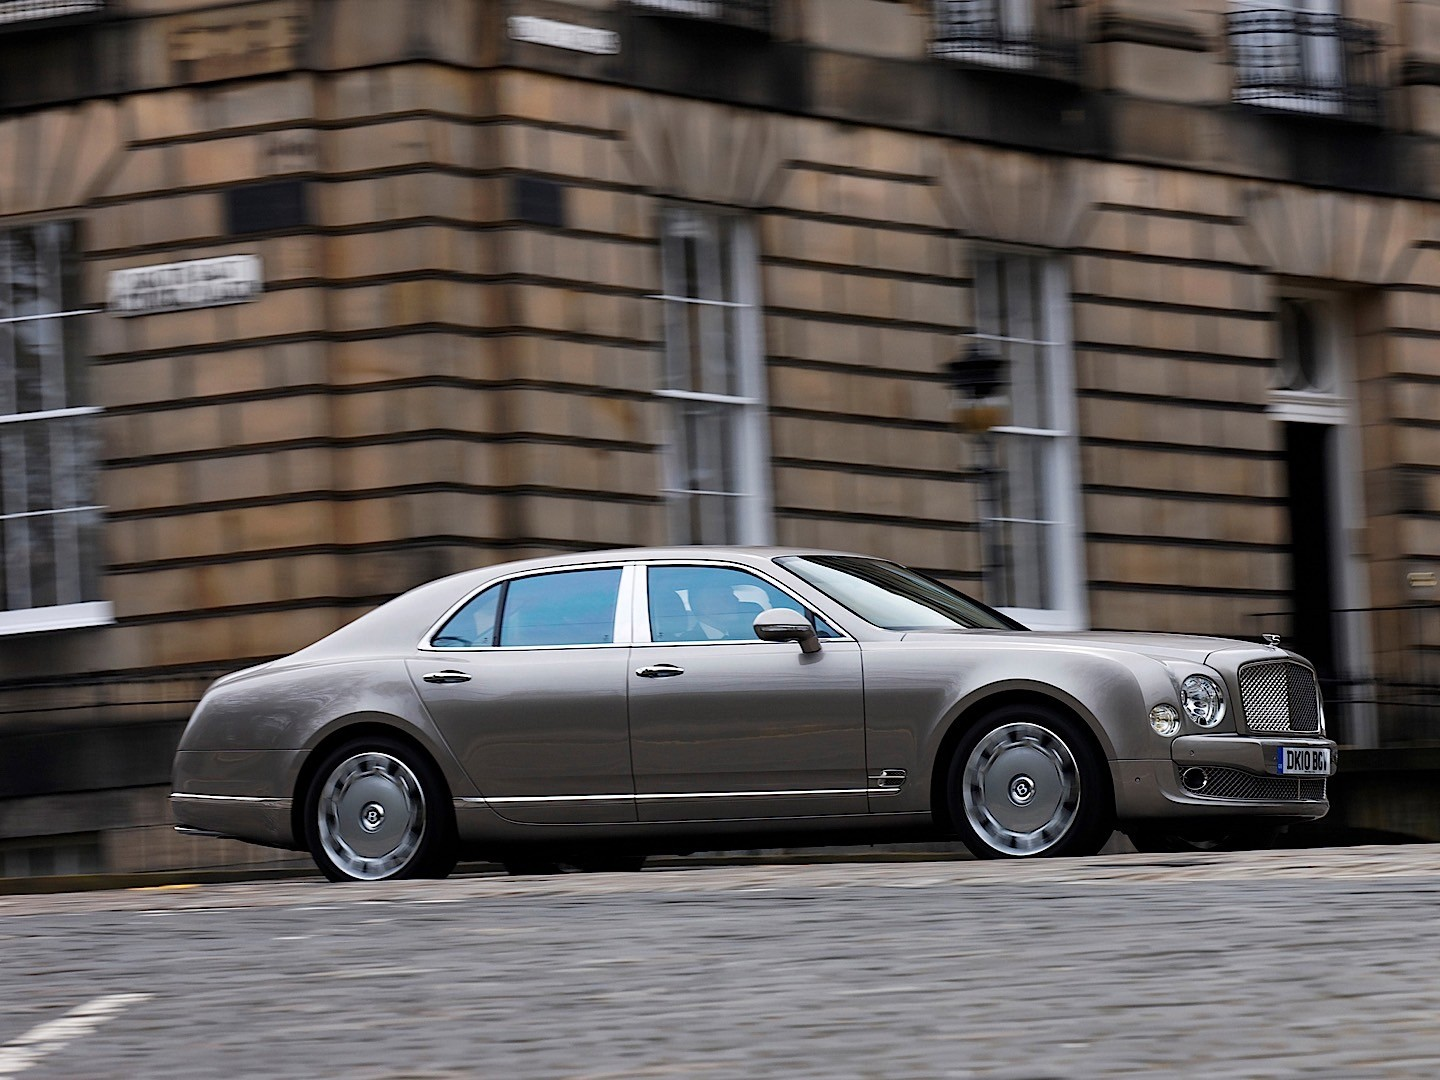 Bentley mulsanne specs 2009 2010 2011 2012 2013 2014 2015 bentley mulsanne 2009 2016 vanachro Image collections